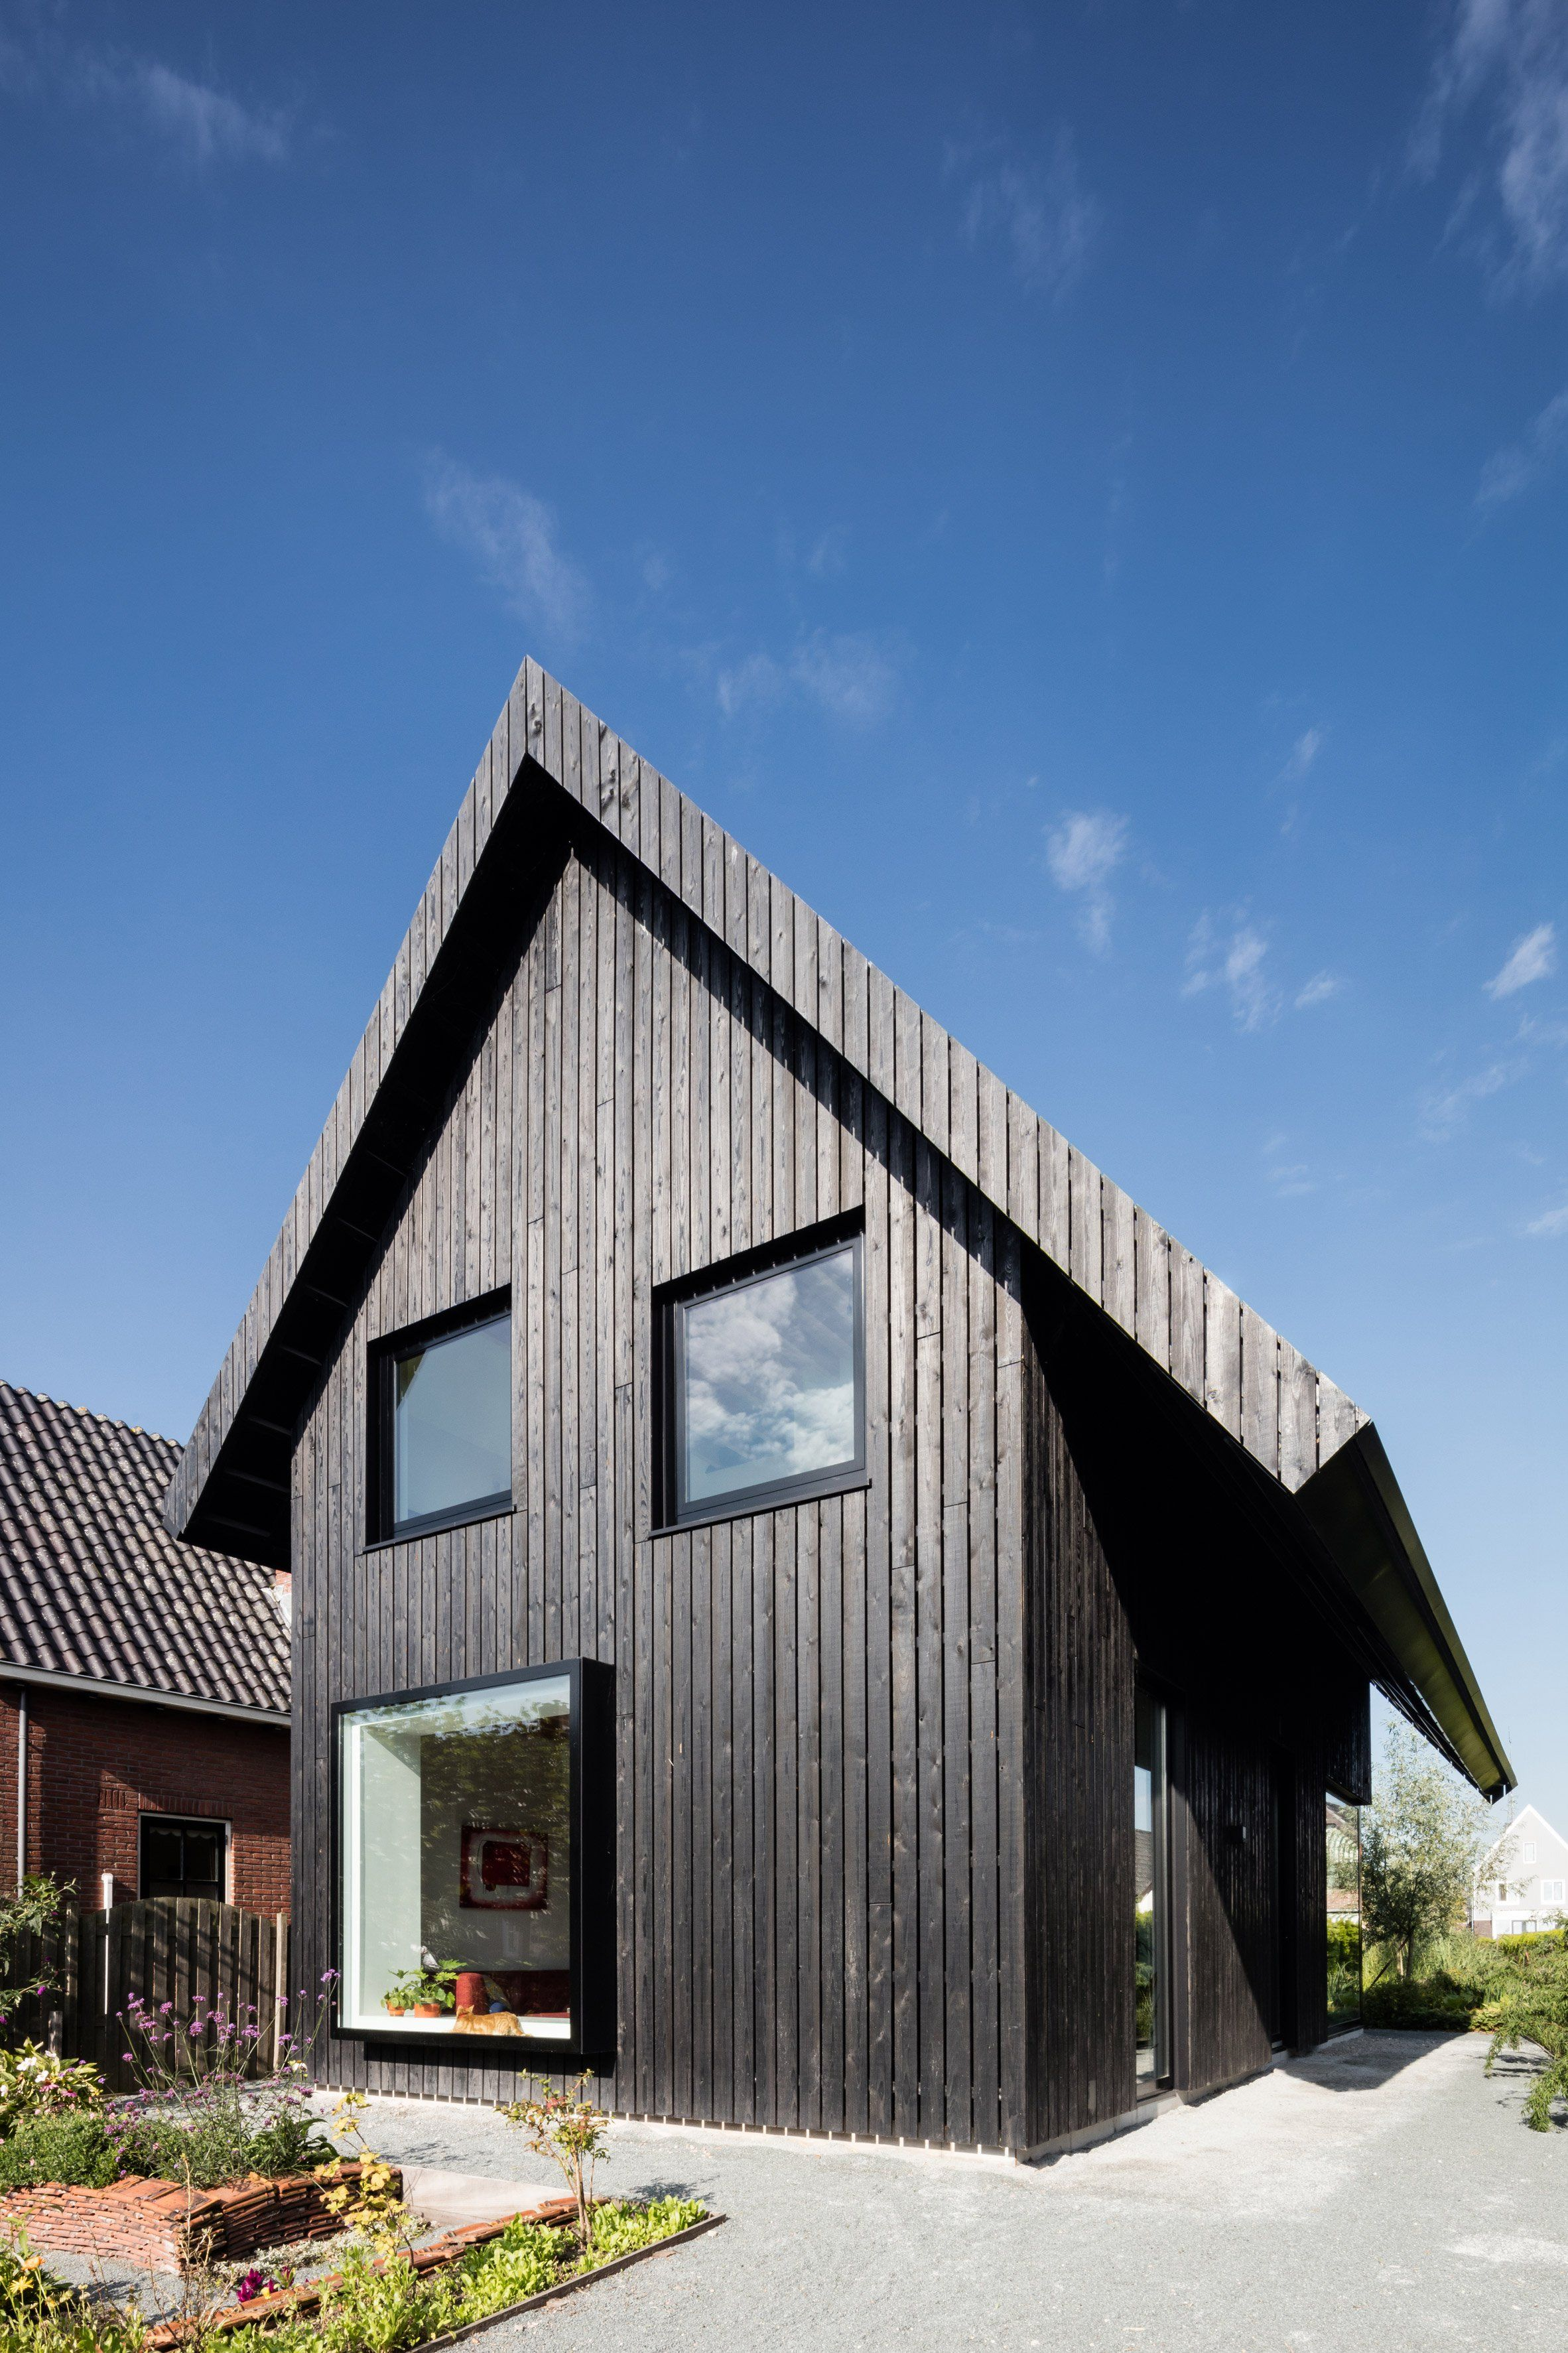 Pin By Sako Chater On 07 70 Roof Wall Specialties Wooden Cottage House Cottage